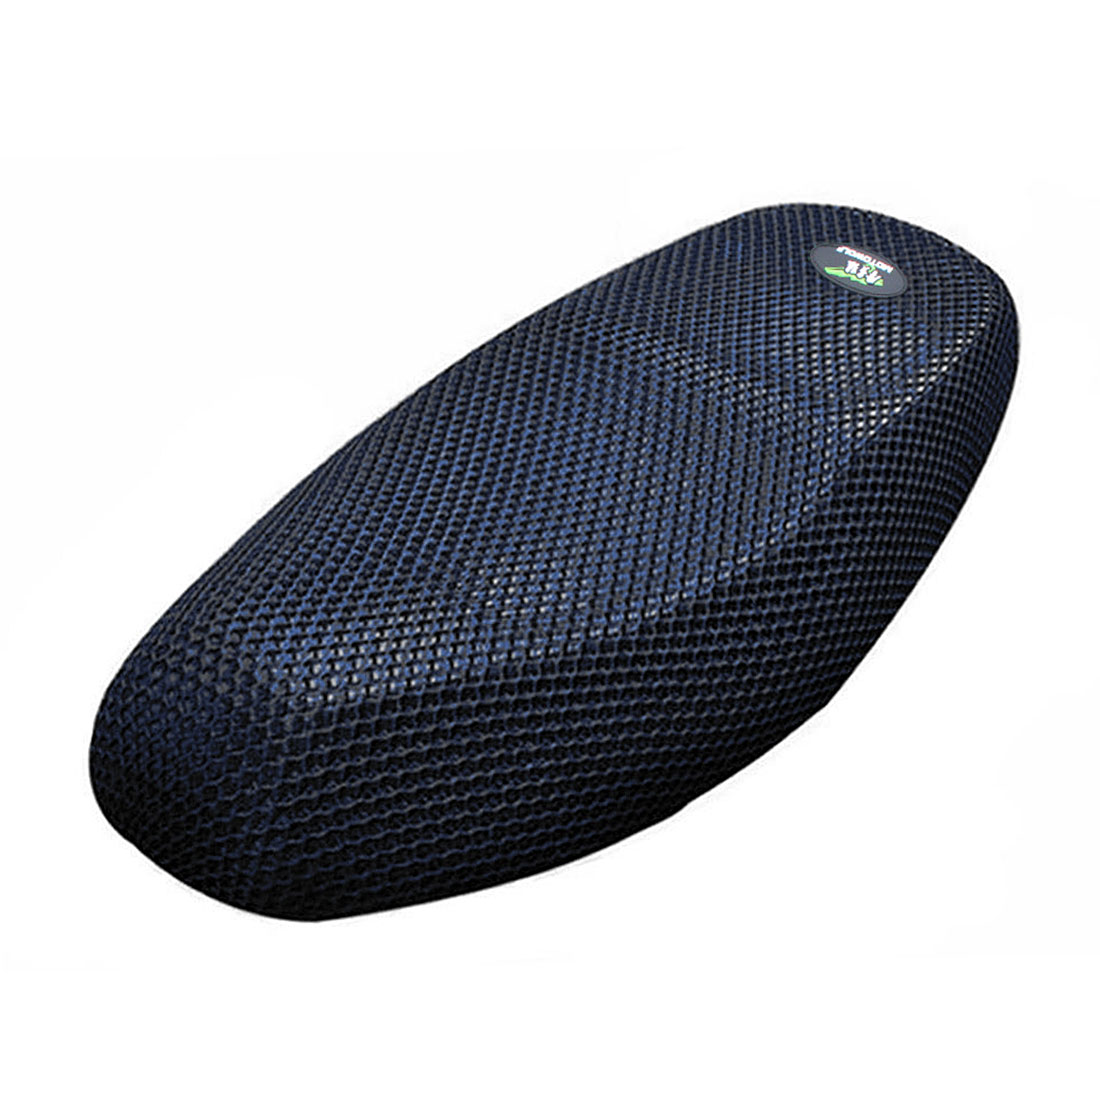 XL Heat Resistant Breathable Seat Saddle 3D Mesh Cover Black Blue for Motorcycle